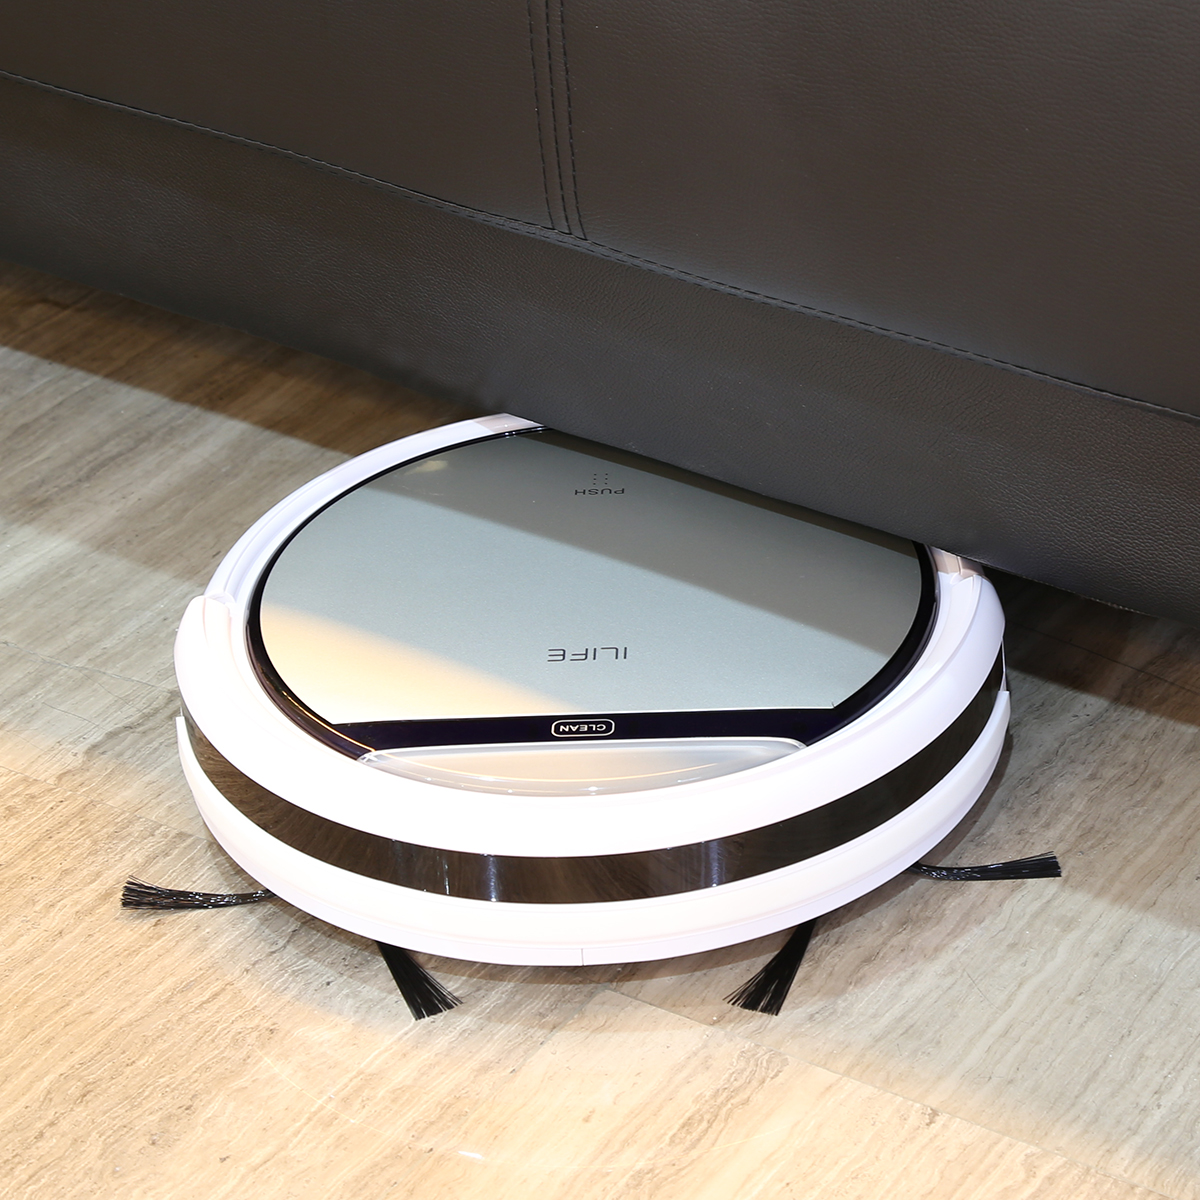 ILIFE V5 Smart Automatic Cleaning Robot Floor Cleaner Vacuum Microfiber Dust Cleaner Auto Sweeping Machine